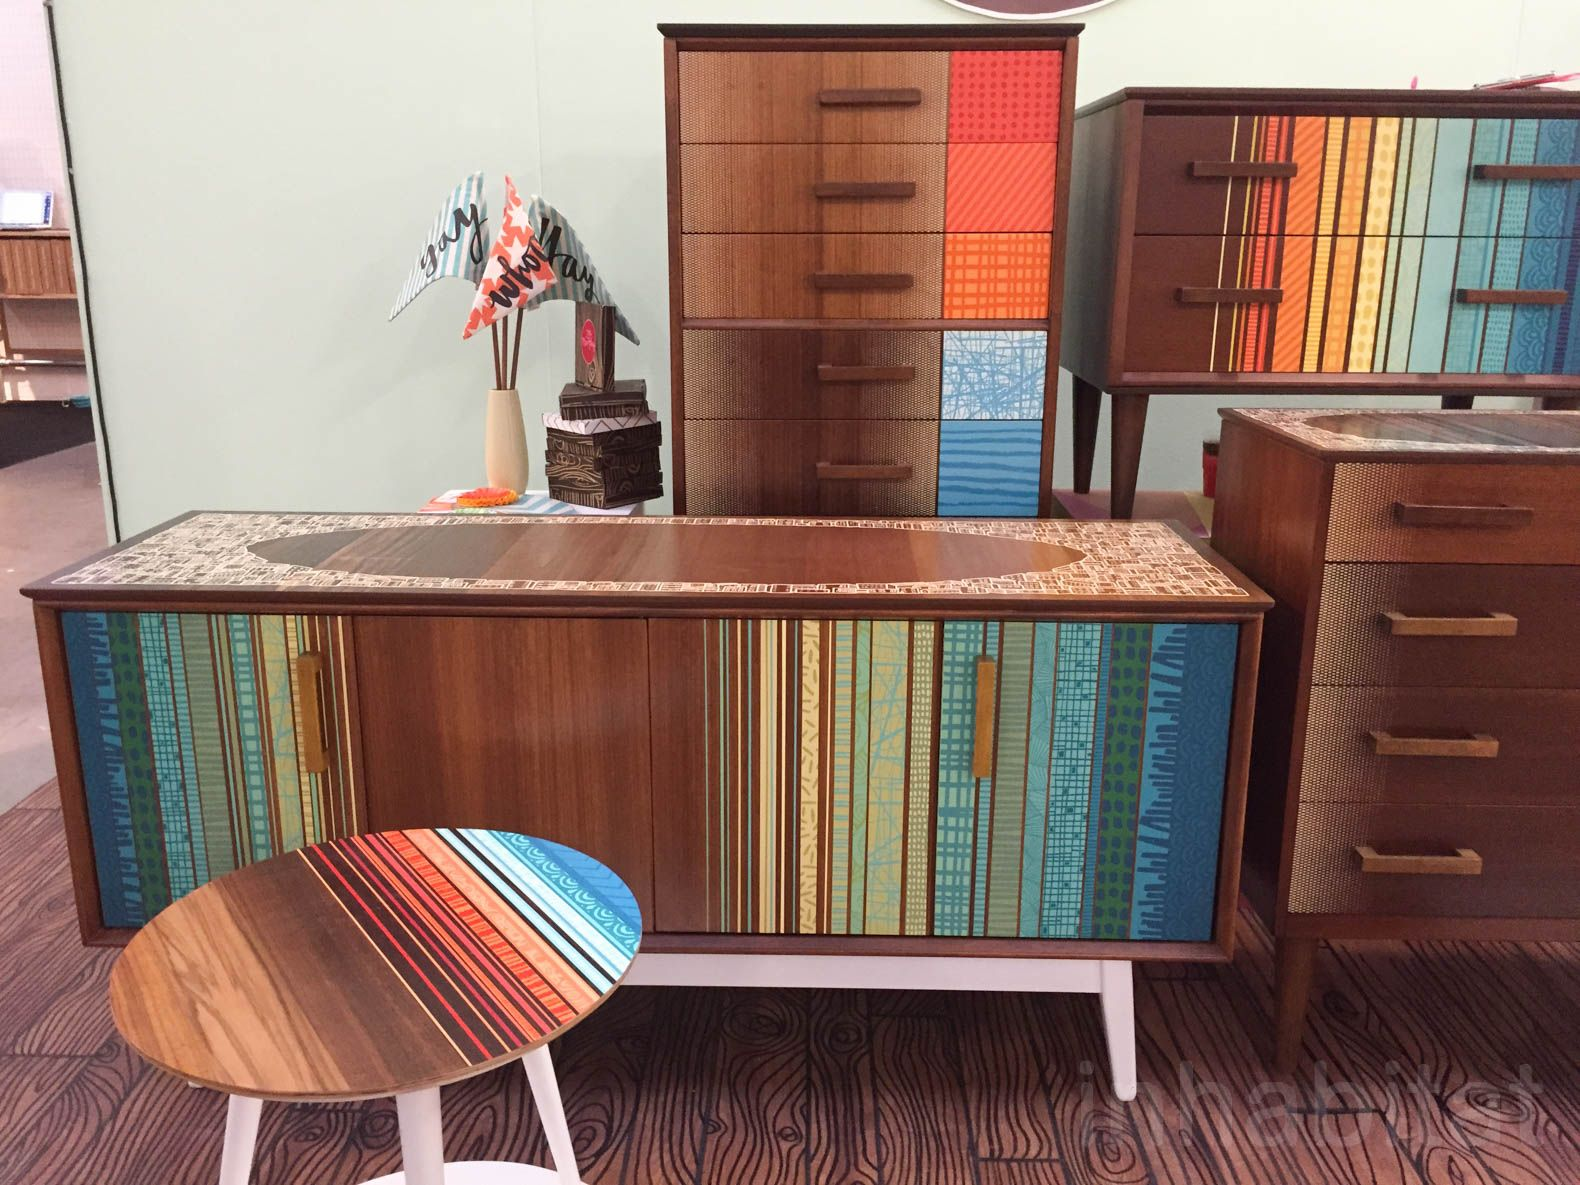 Zoe Murphyu0027s Stunning Upcycled Pieces. The British Designer Breathes New  Life Into Salvaged Midcentury Modern Furniture With Bold And Colorful  Designs ...